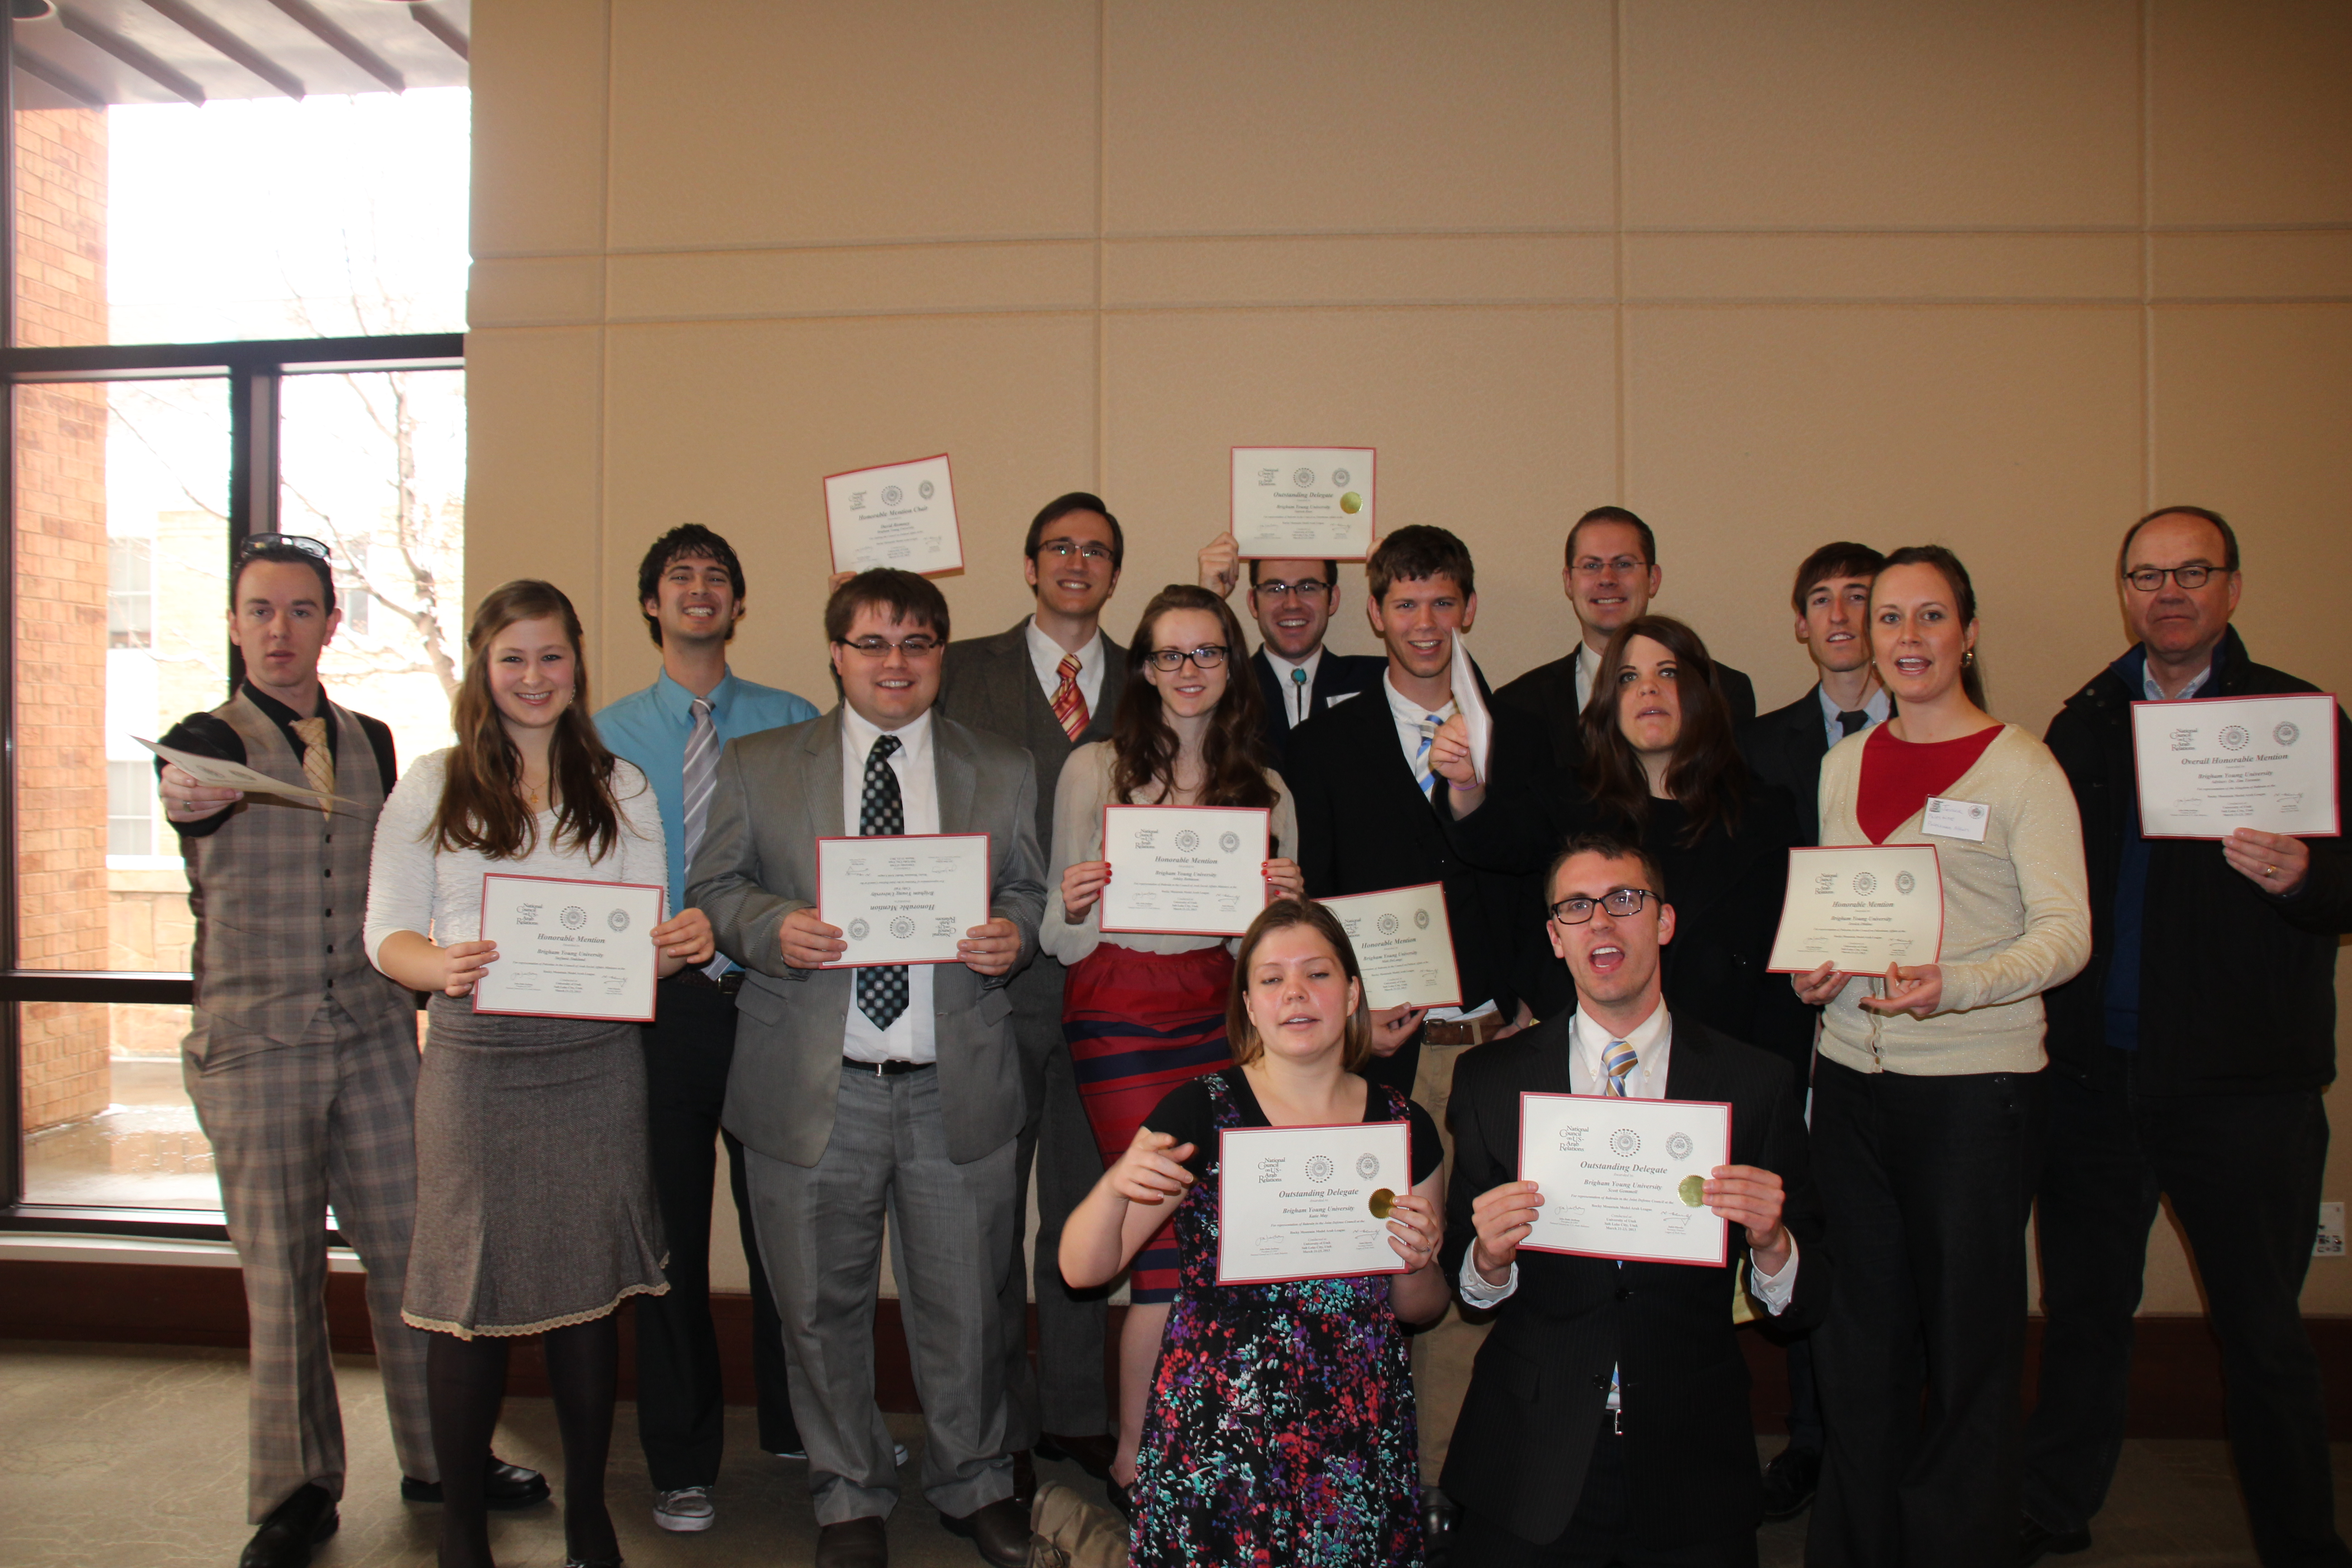 Most of the Model Arab League students returned from the regional competition with awards and positive connections with other students there. Photo by Bay Ying-Bei